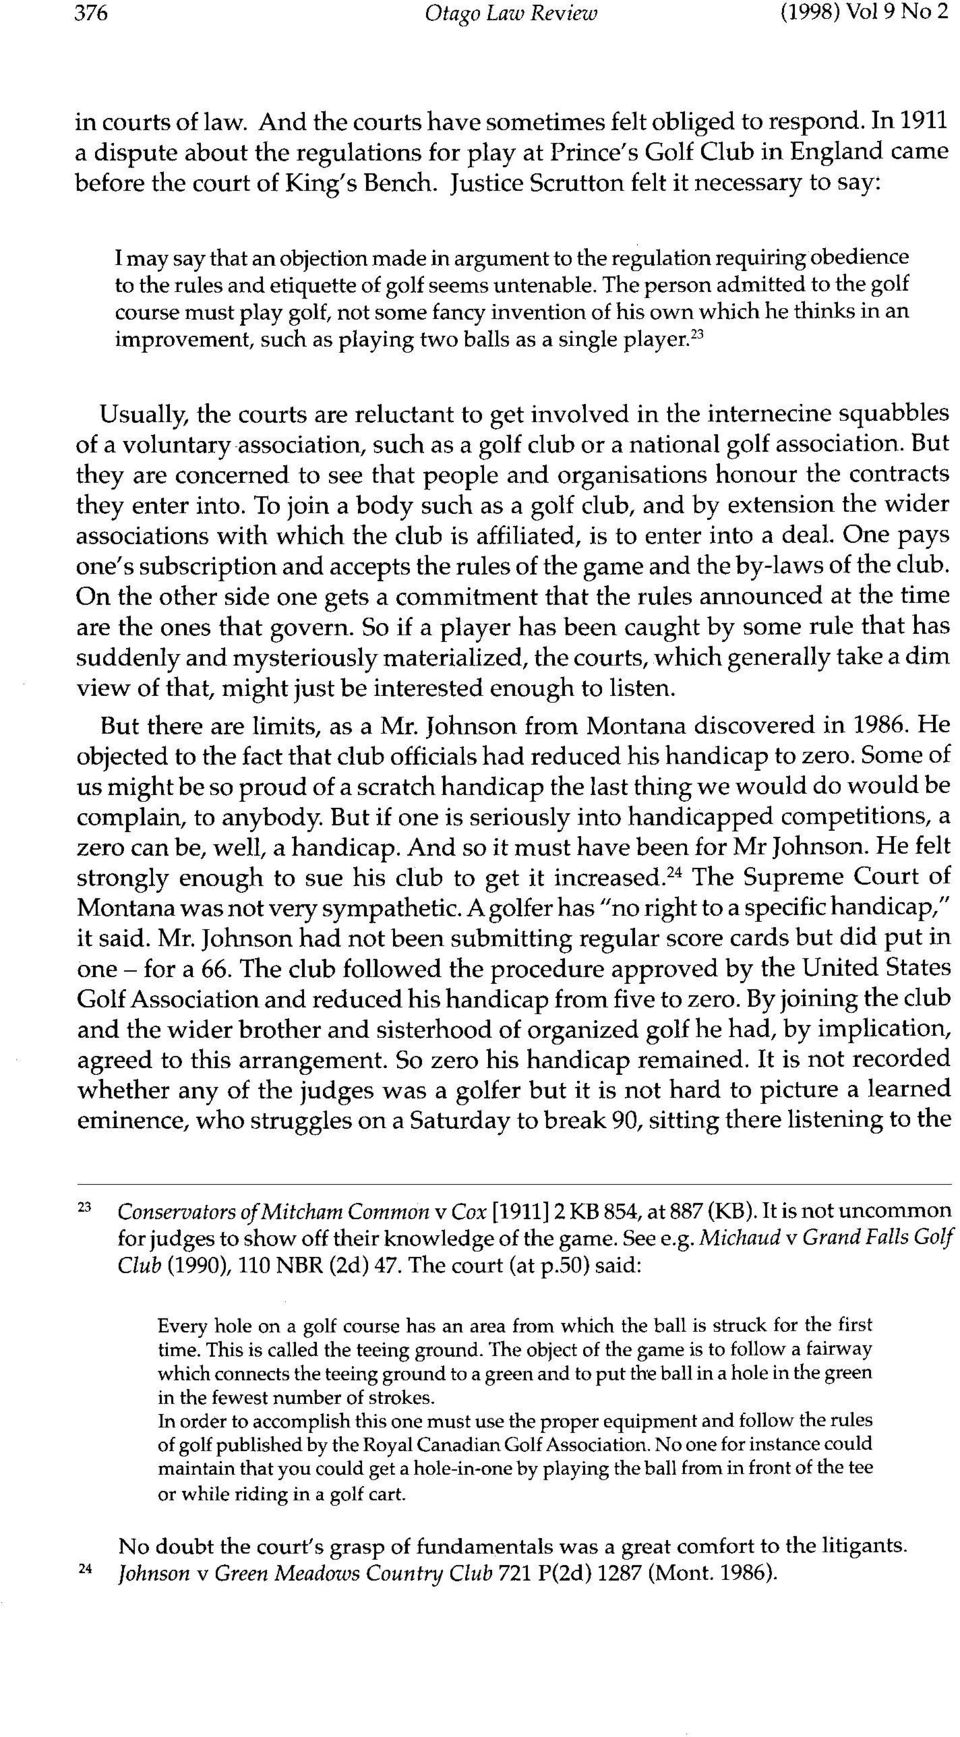 Justice Scrutton felt it necessary to say: I may say that an objection made in argument to the regulation requiring obedience to the rules and etiquette of golf seems untenable.